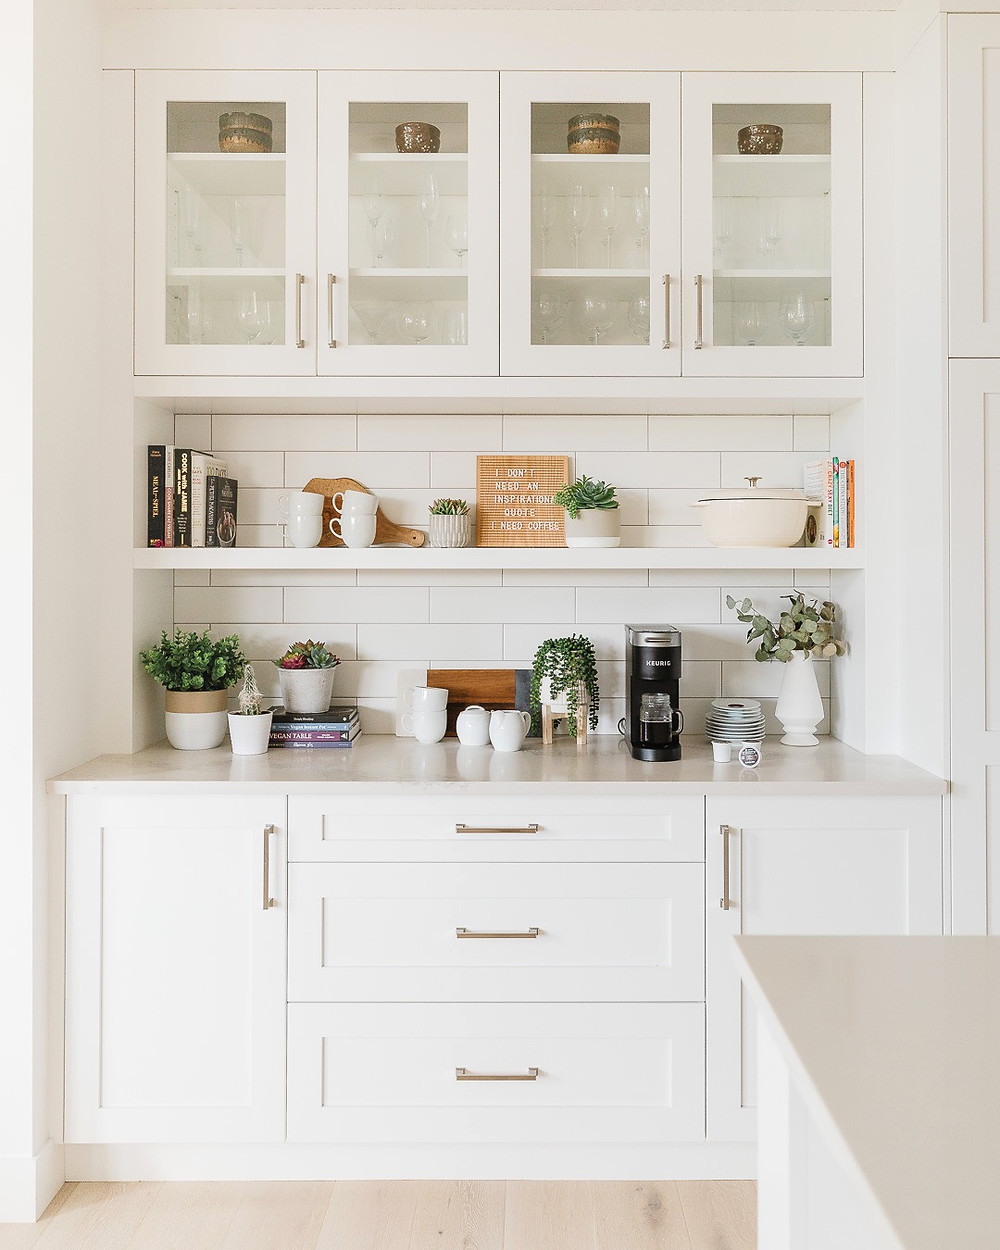 White kitchen cabinets with glass uppers and open shelves in the middle and plants, dishes and cookbooks displayed.